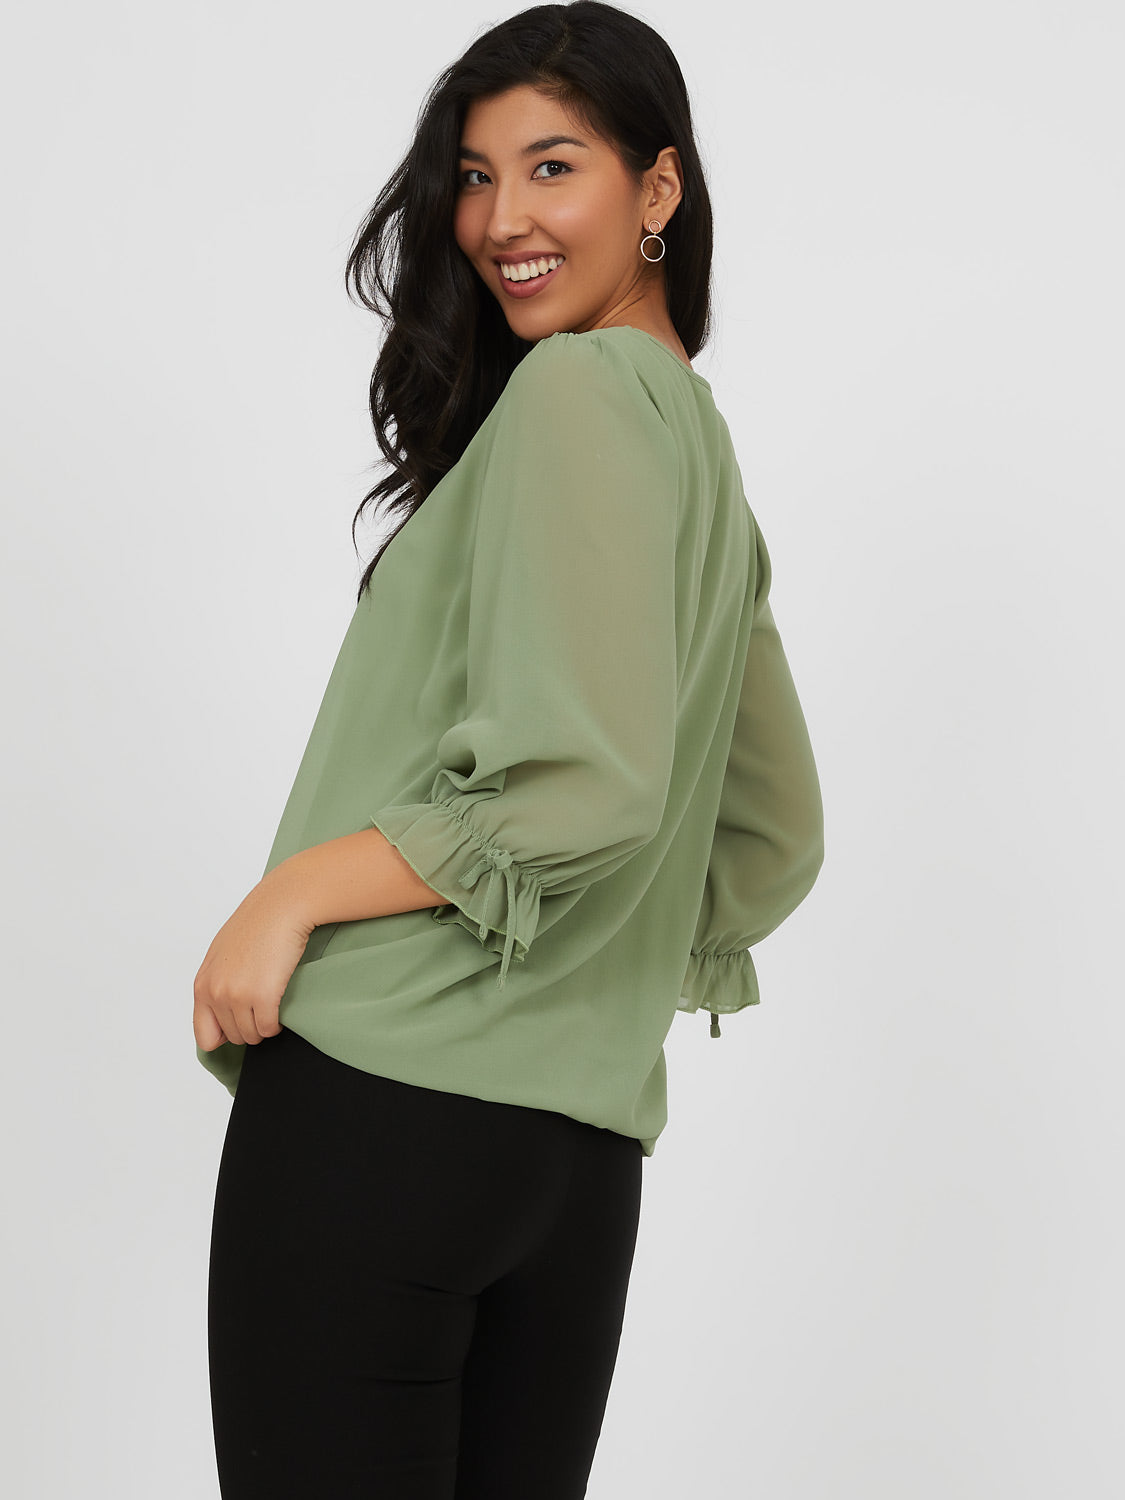 ¾ Balloon Sleeve Blouse